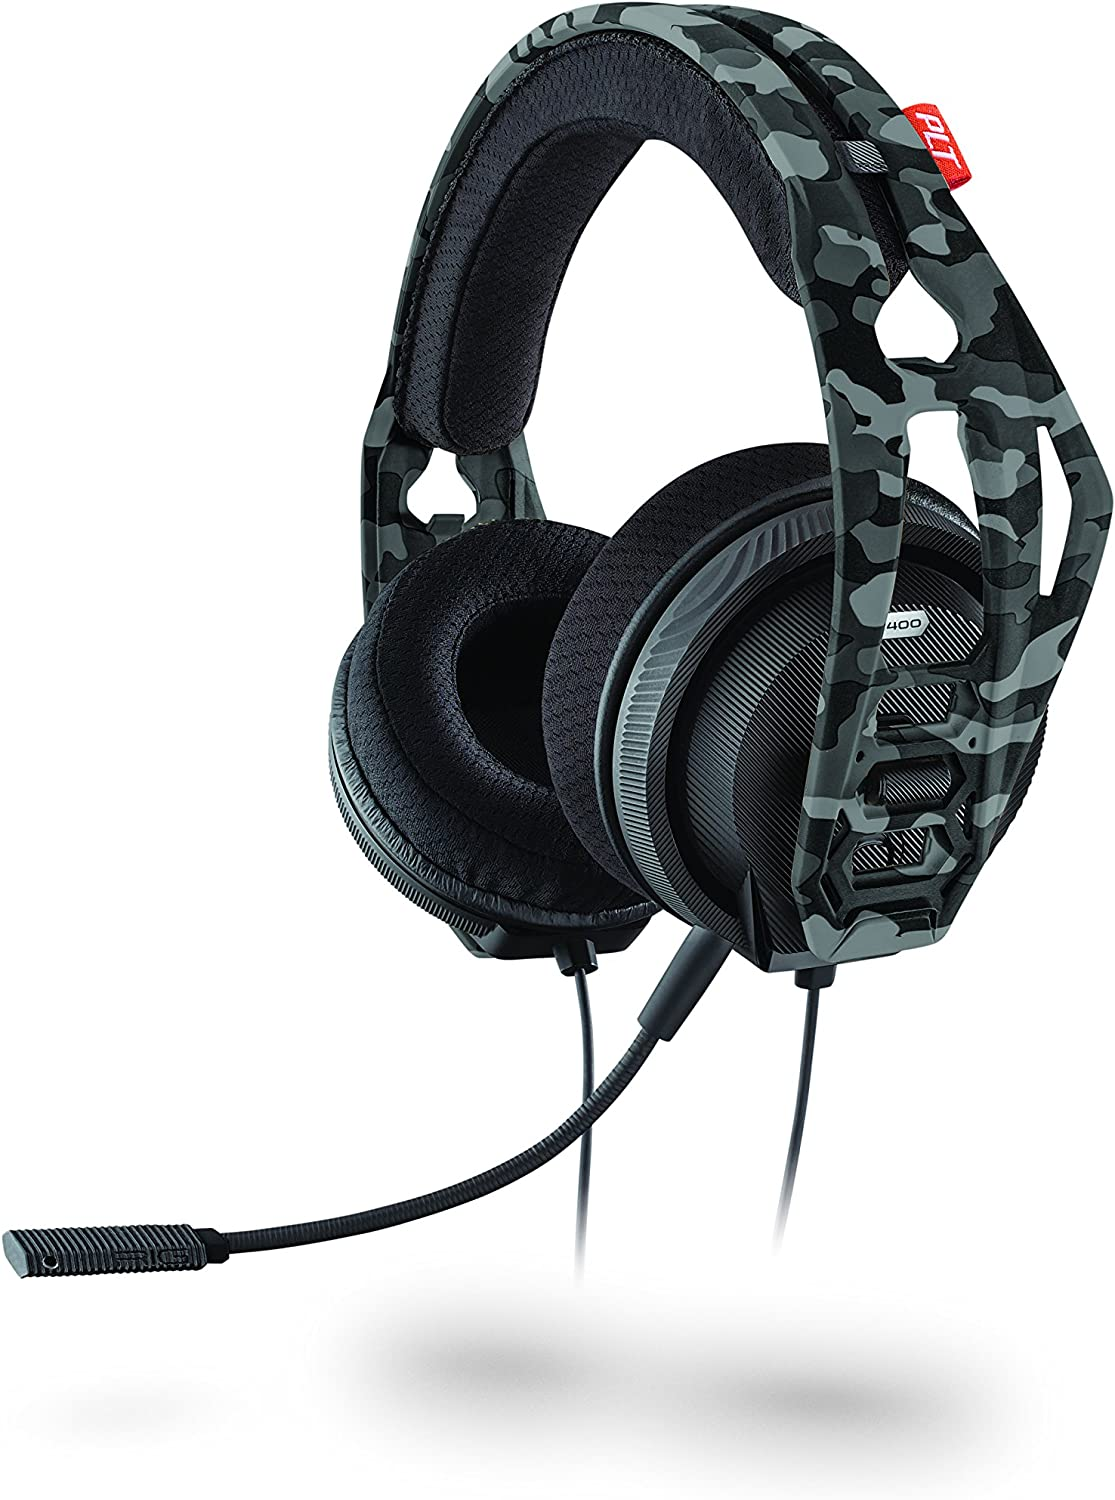 Plantronics RIG 400HX Gaming Headset Urban Gray Camo (Xbox One)